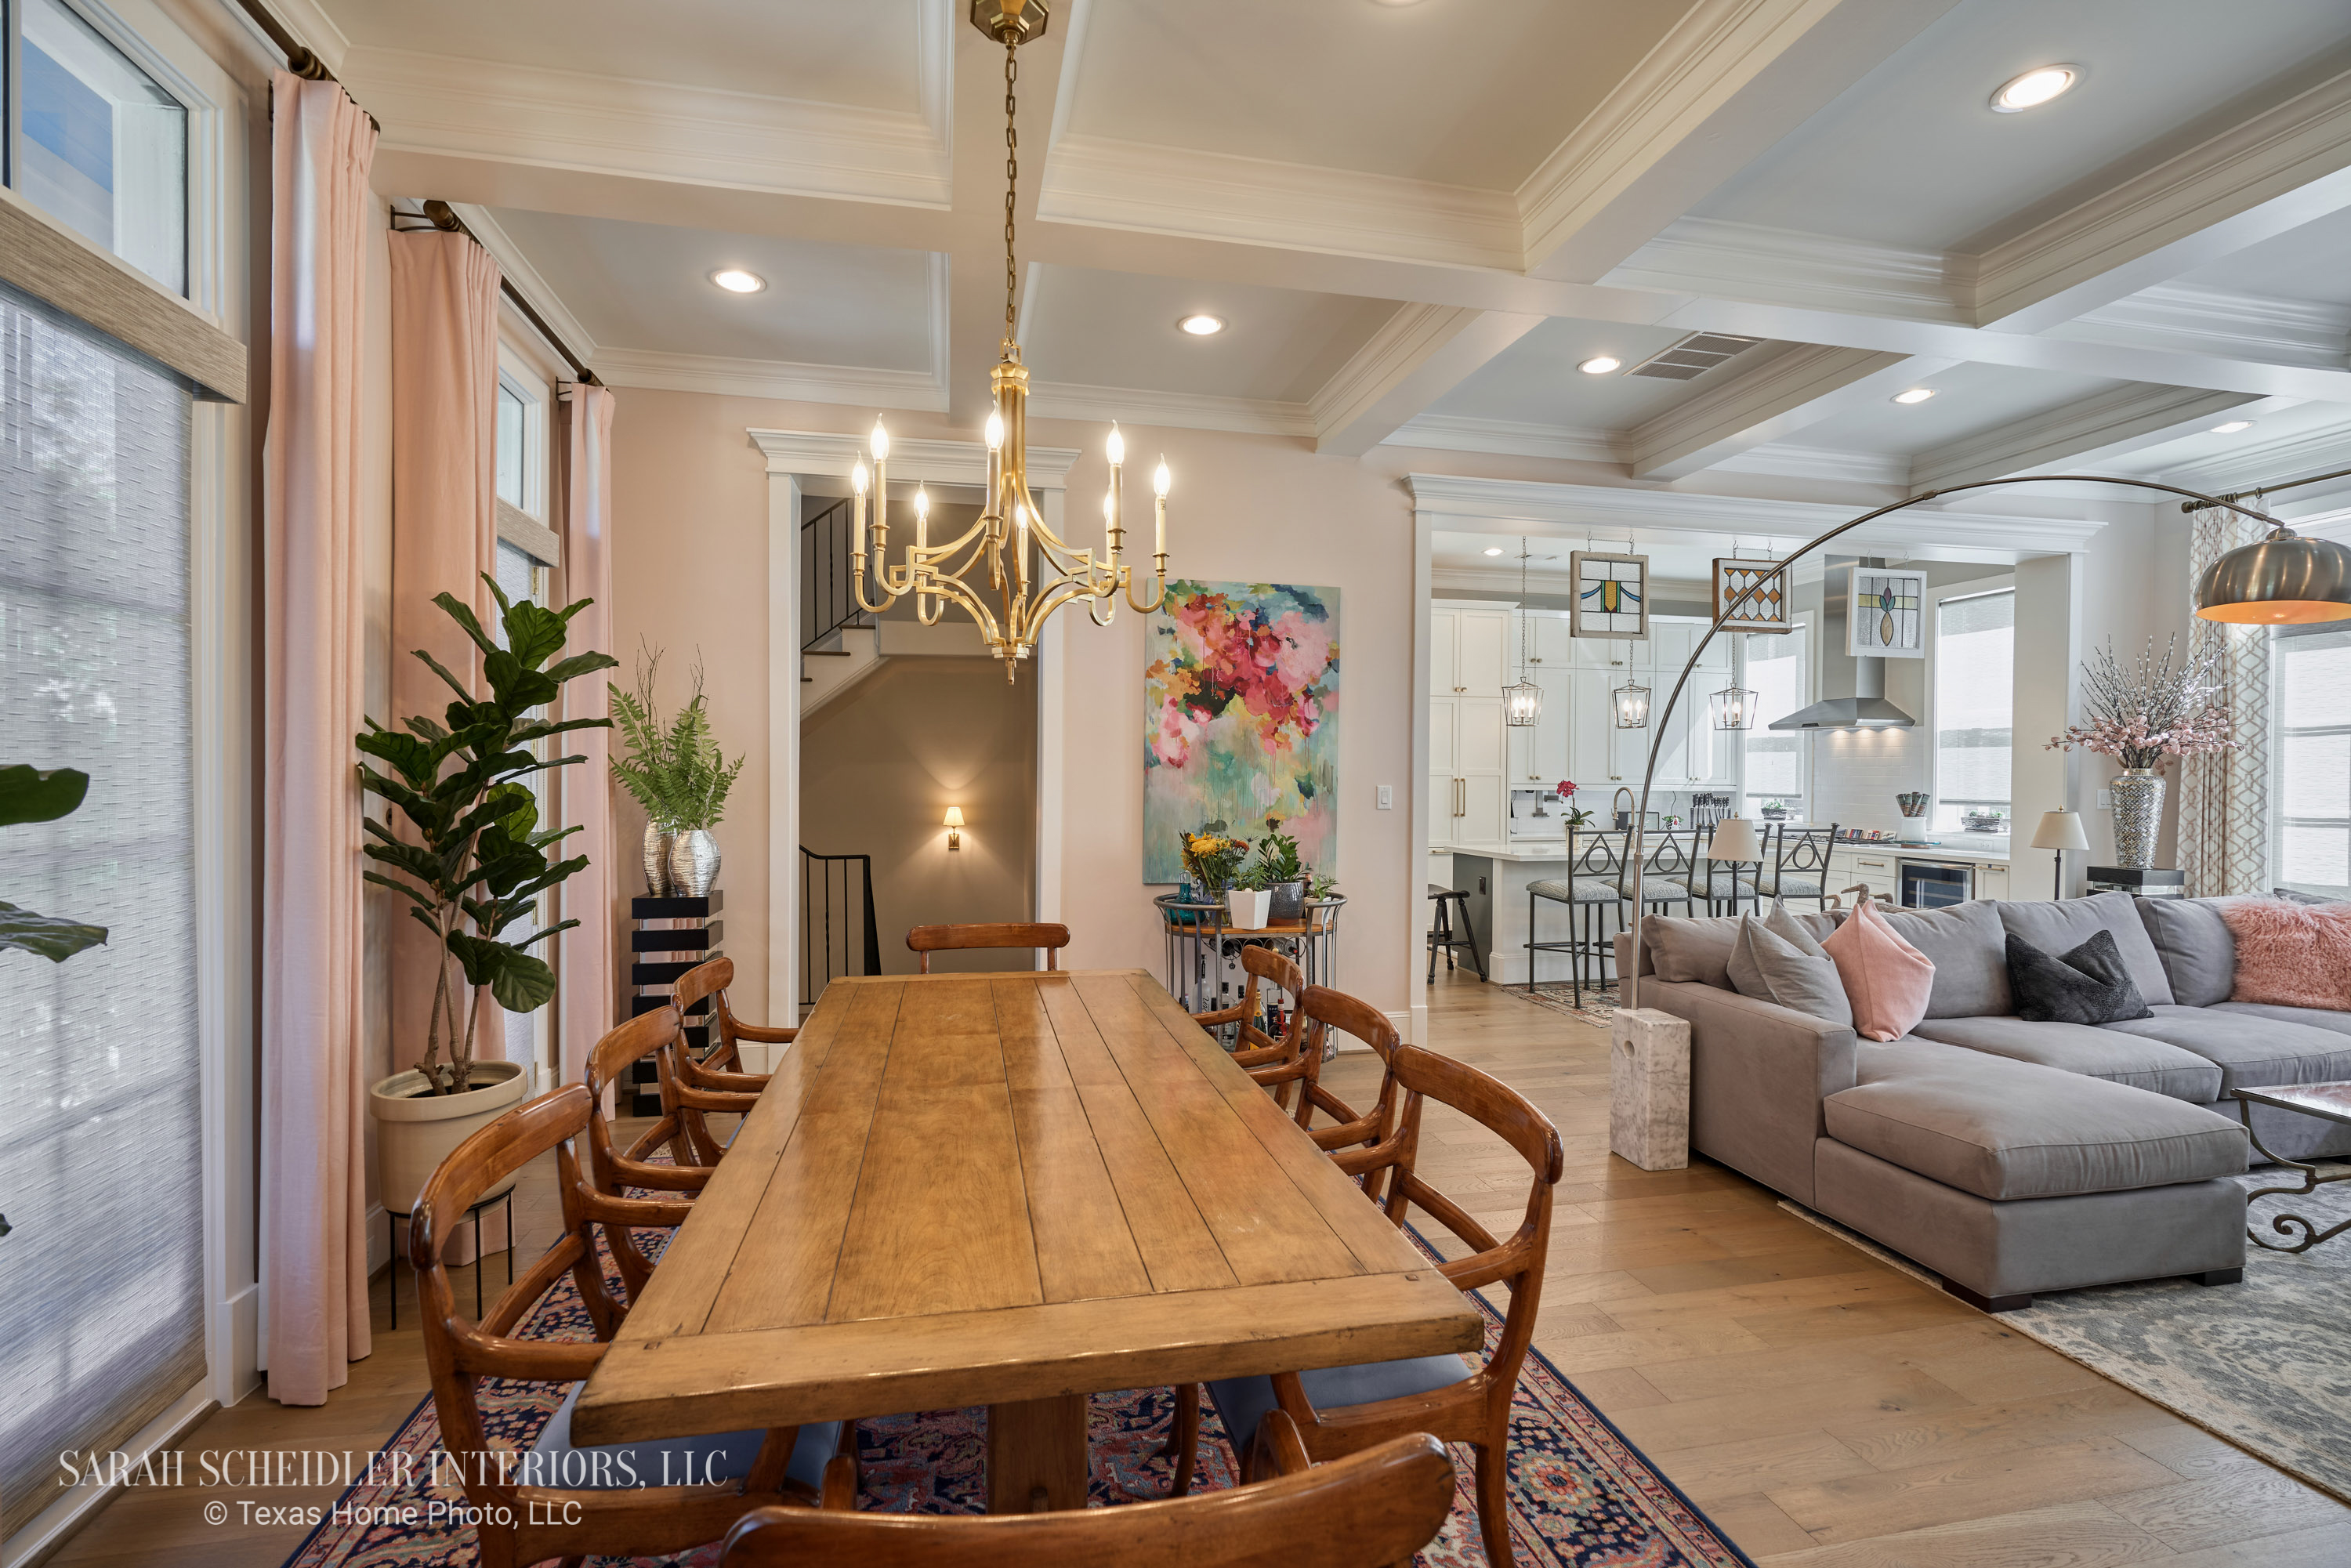 Open-Concept Dining Room, Living Room, and Kitchen Design with Colorful Art, Rugs, Accents, and Custom Drapes